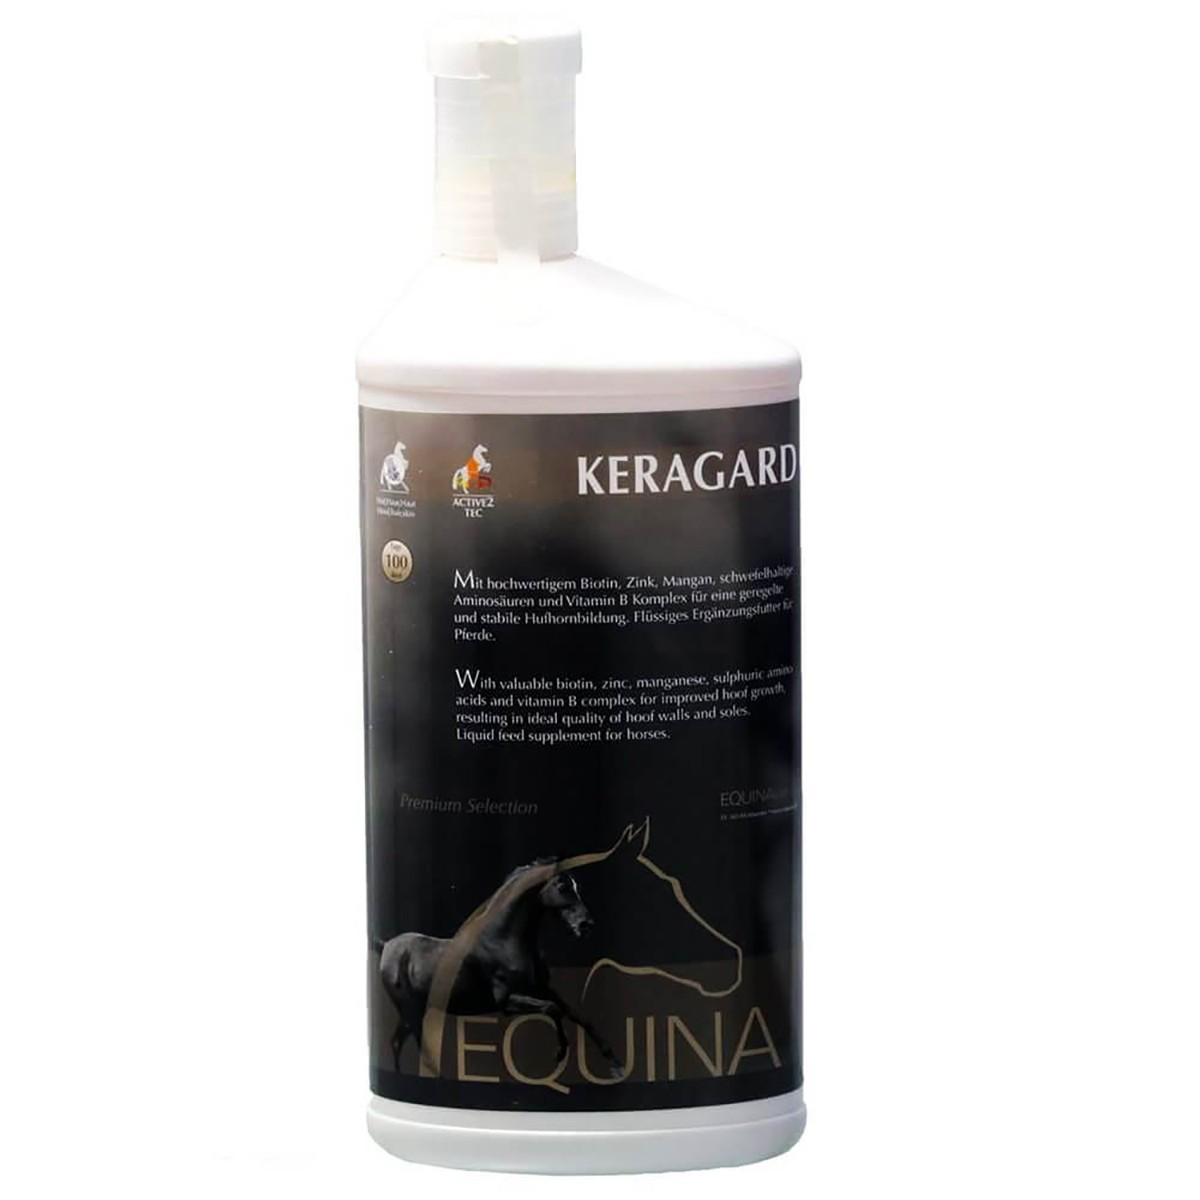 Equina Keragard Hoof Supplement